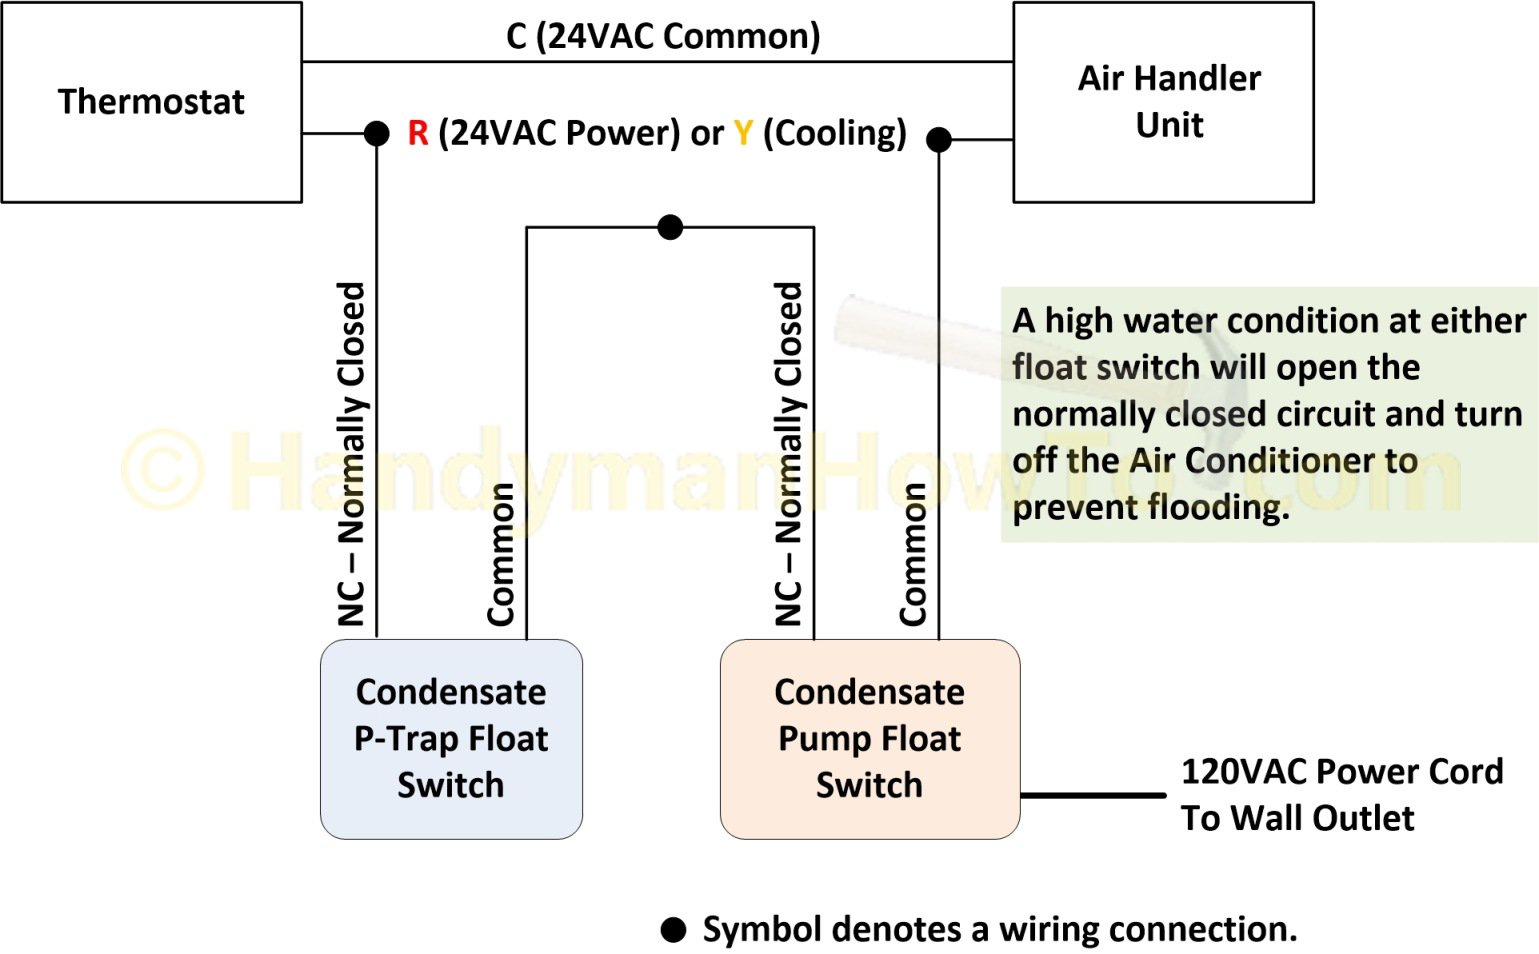 Little Giant Power Cord Wiring Diagram Explore Schematic 120vac Plug For Condensate Pump Wire Center U2022 Rh 66 42 98 166 Types 3 Prong Colors